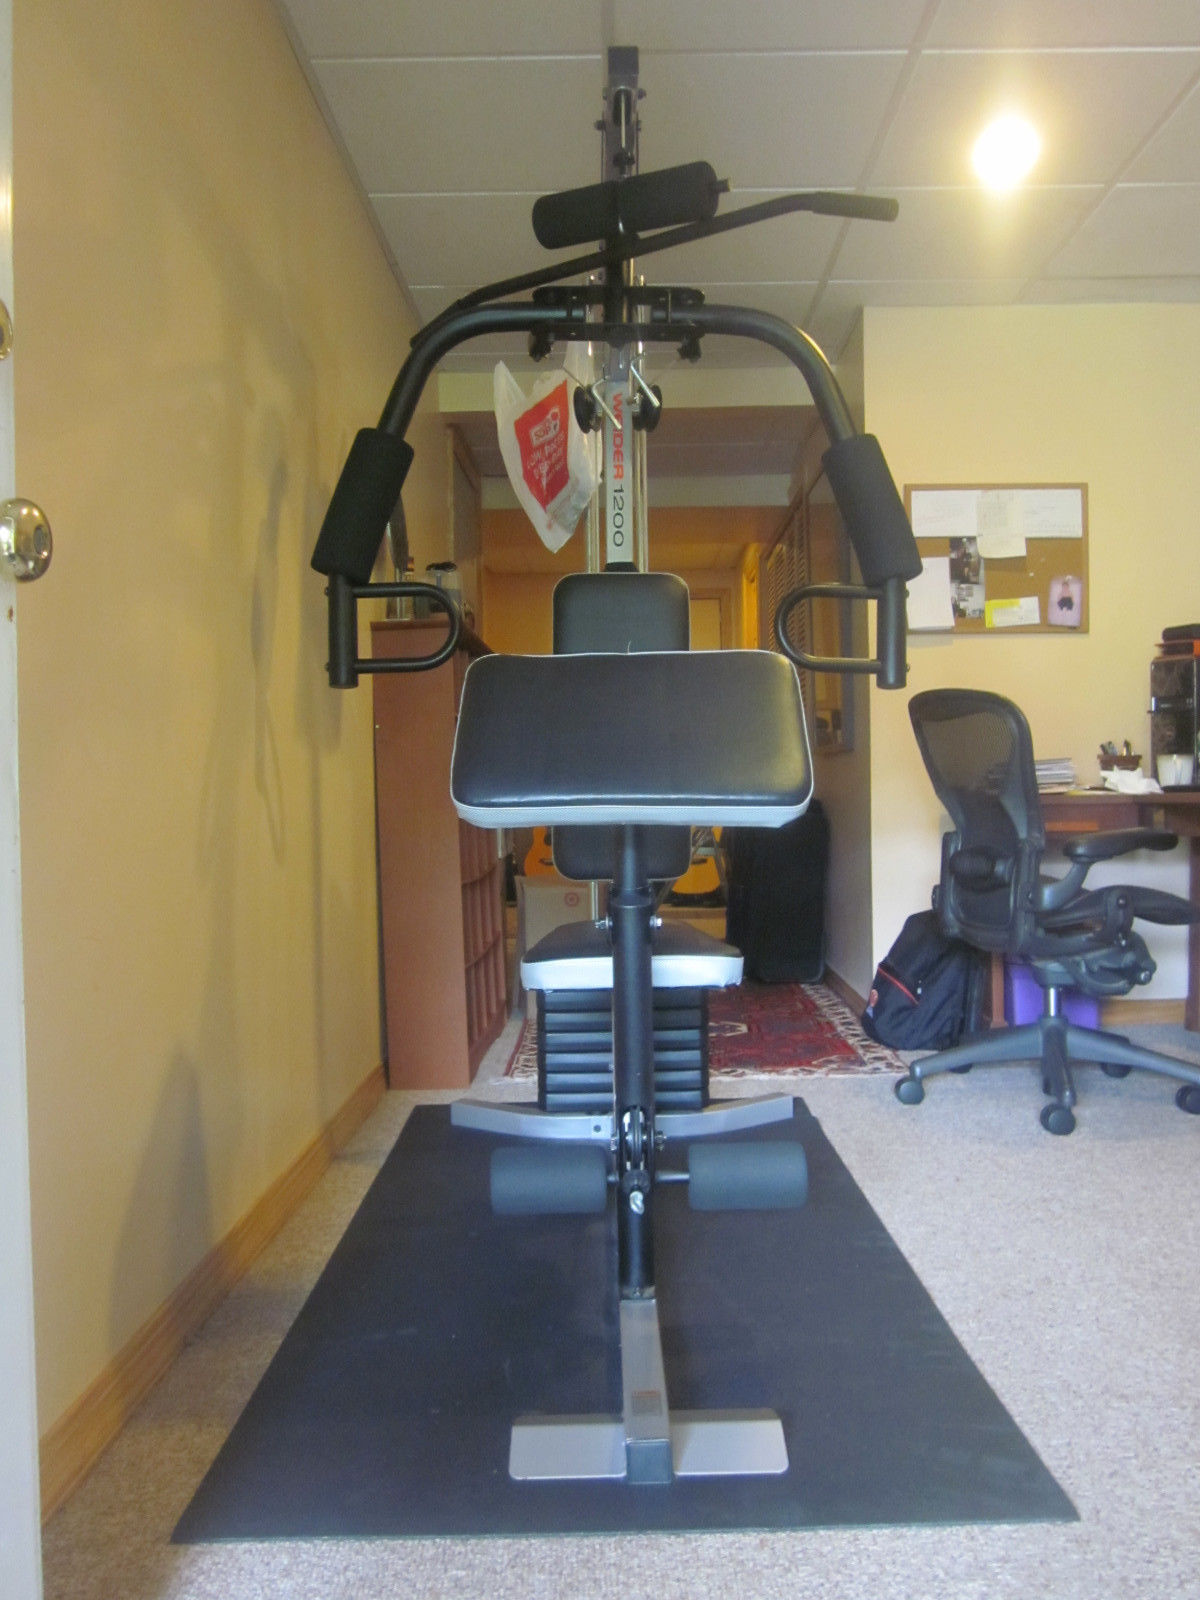 Weider weight system robust home gym sports workout